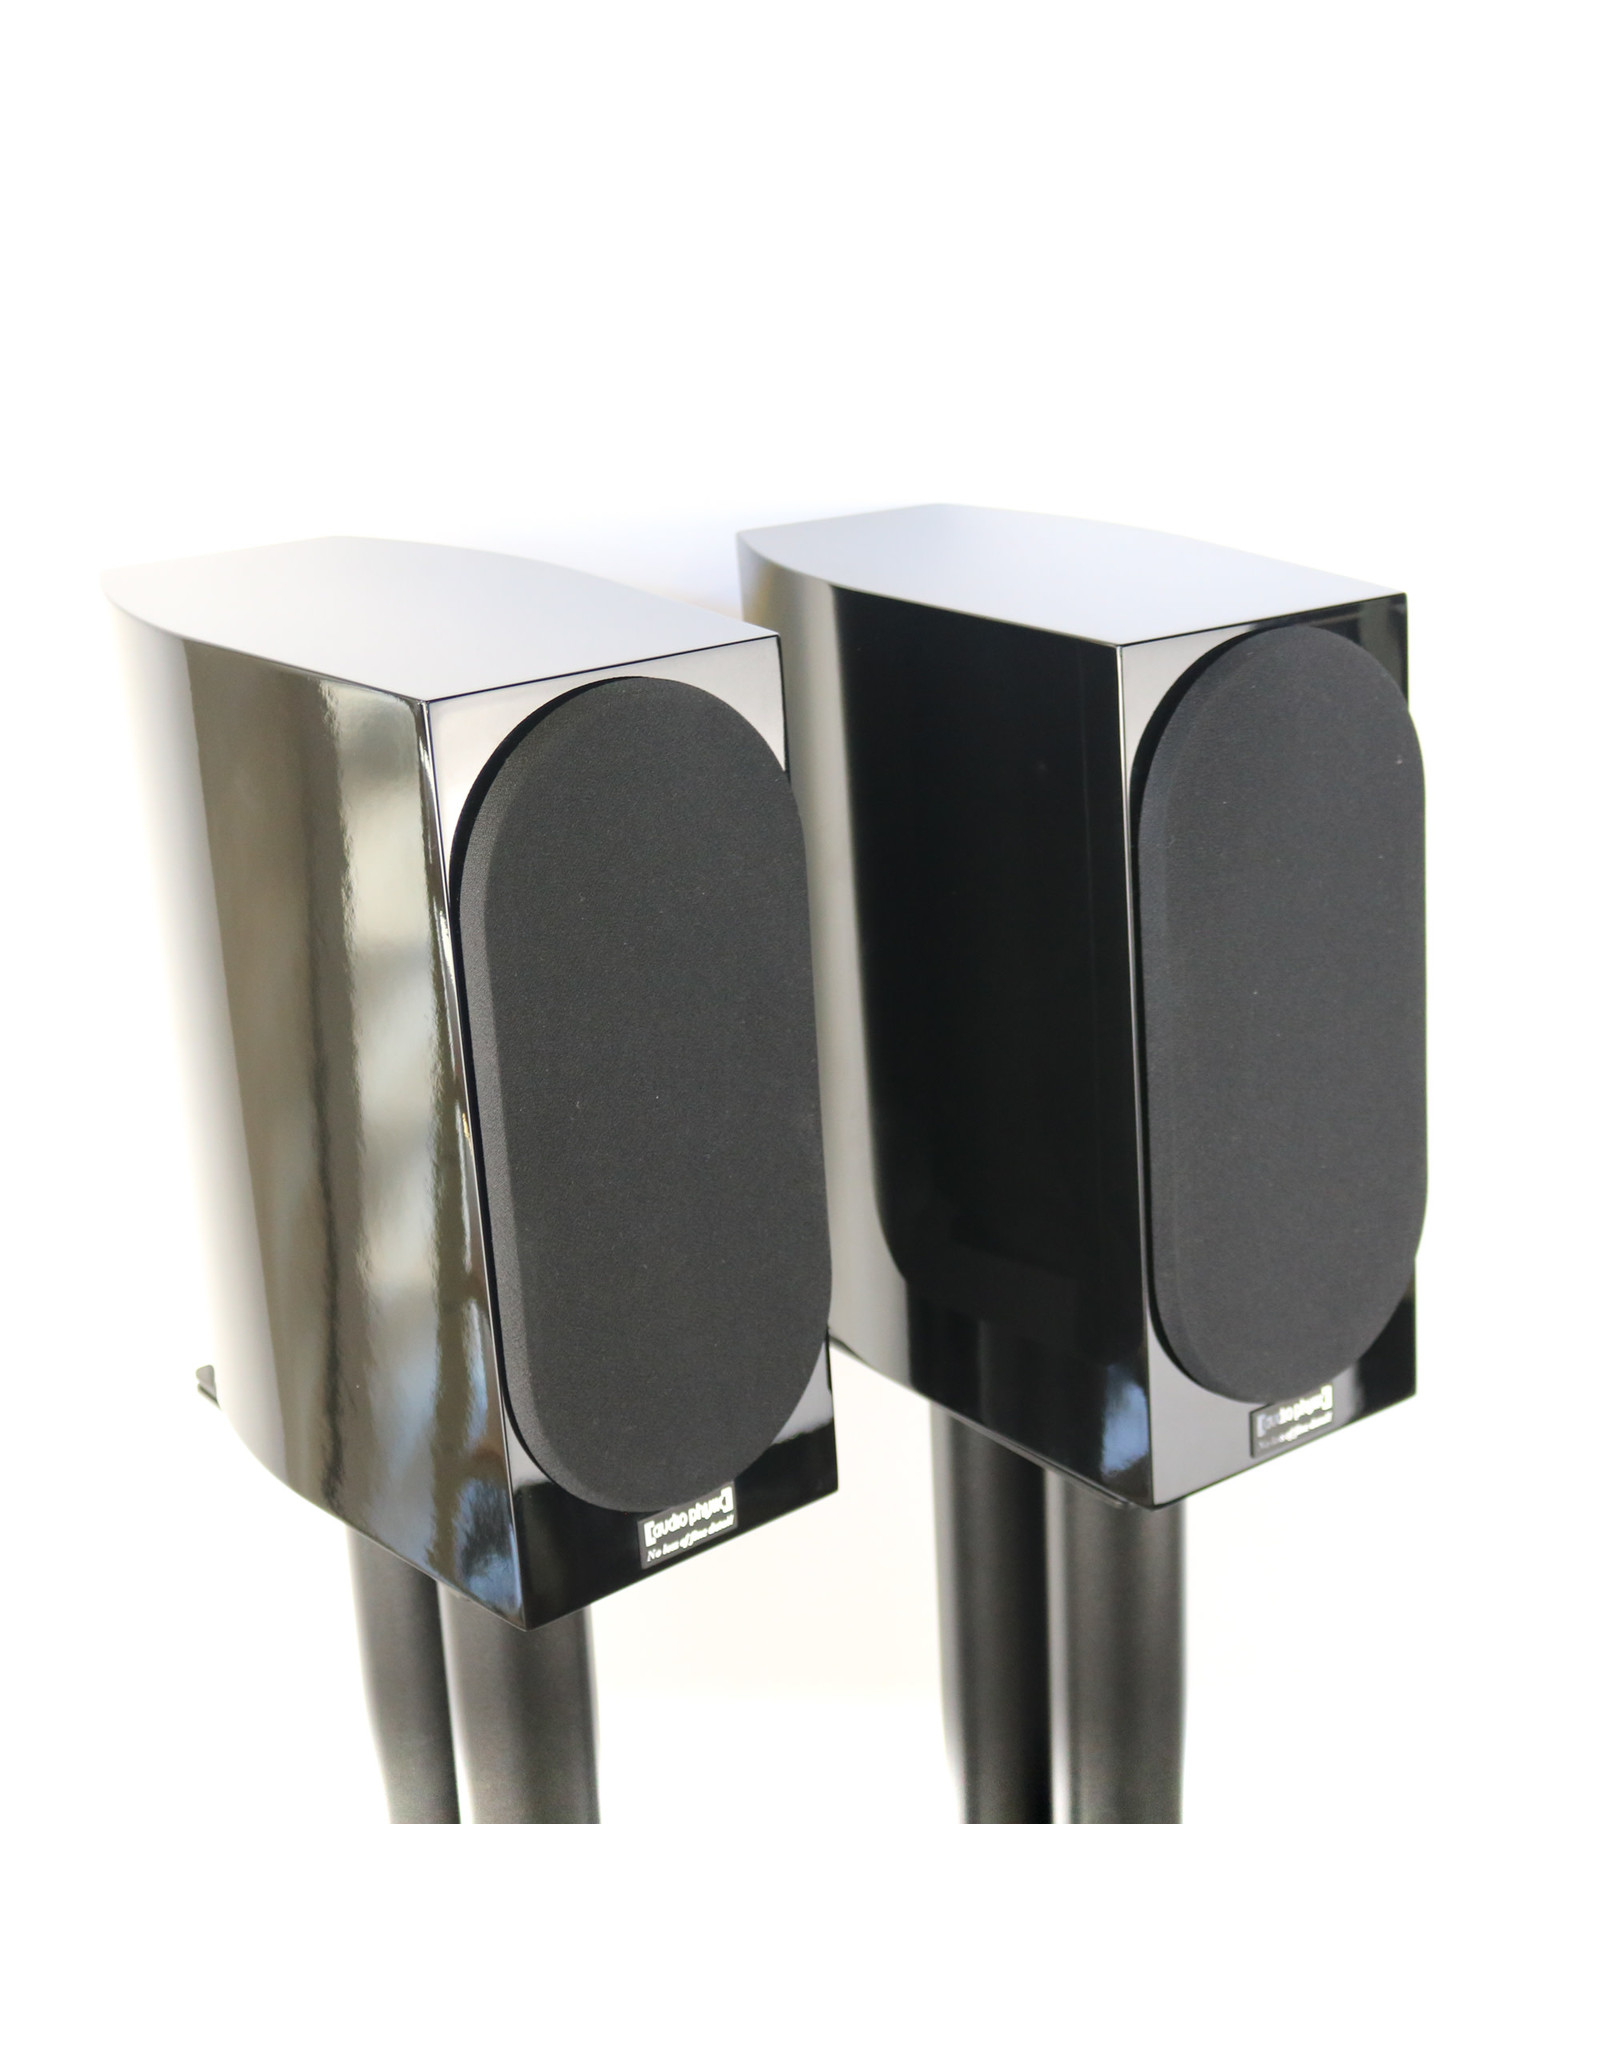 Audio Physic Audio Physic Step Plus Bookshelf Speakers With PMC Stands USED